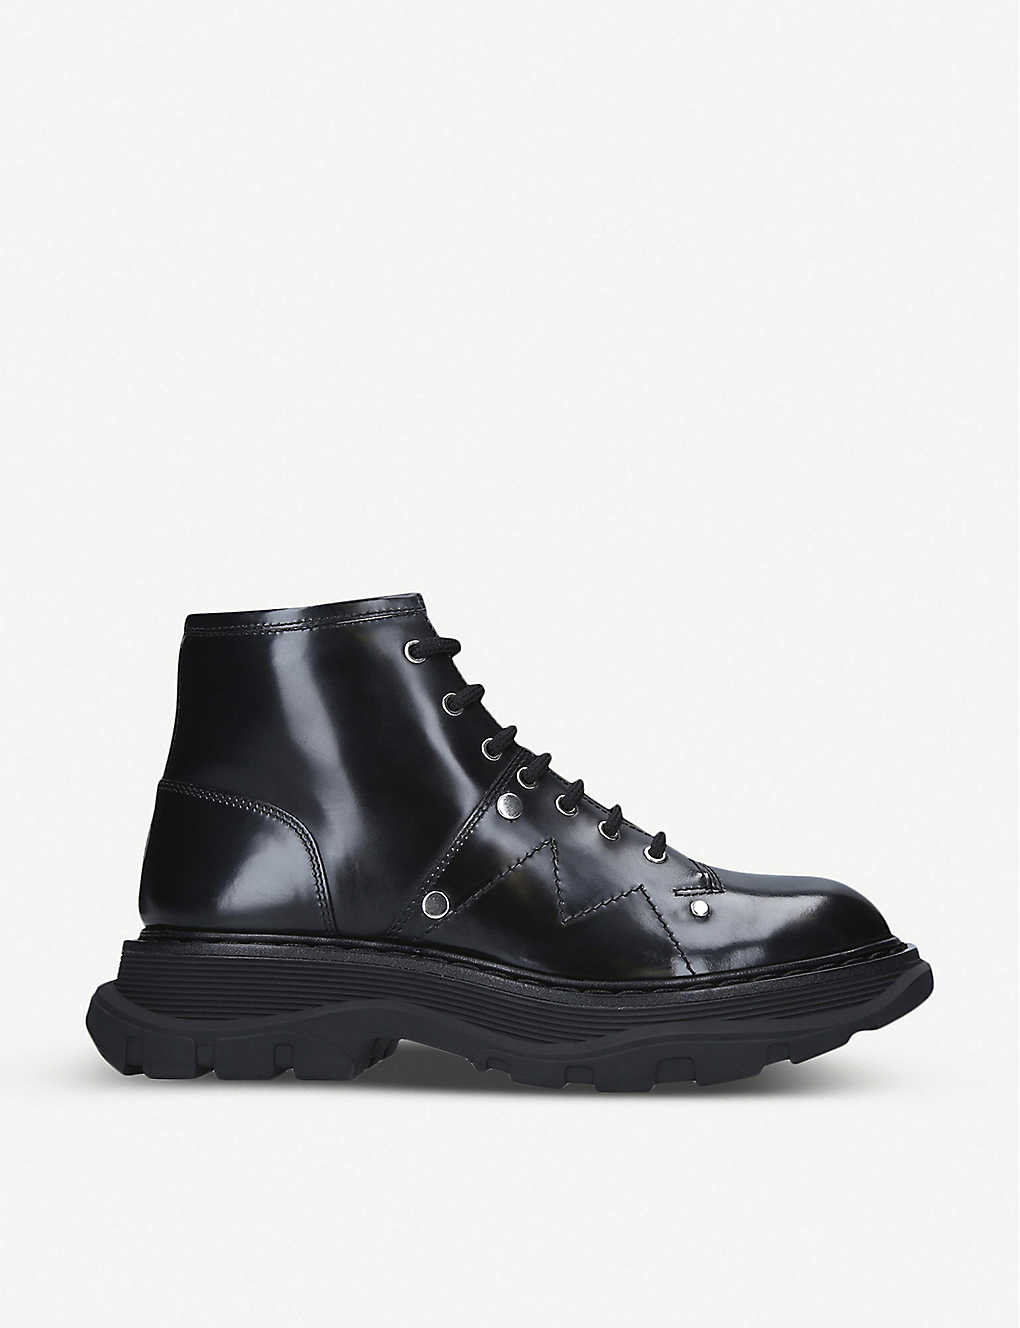 ALEXANDER MCQUEEN: Tread lace-up leather boots